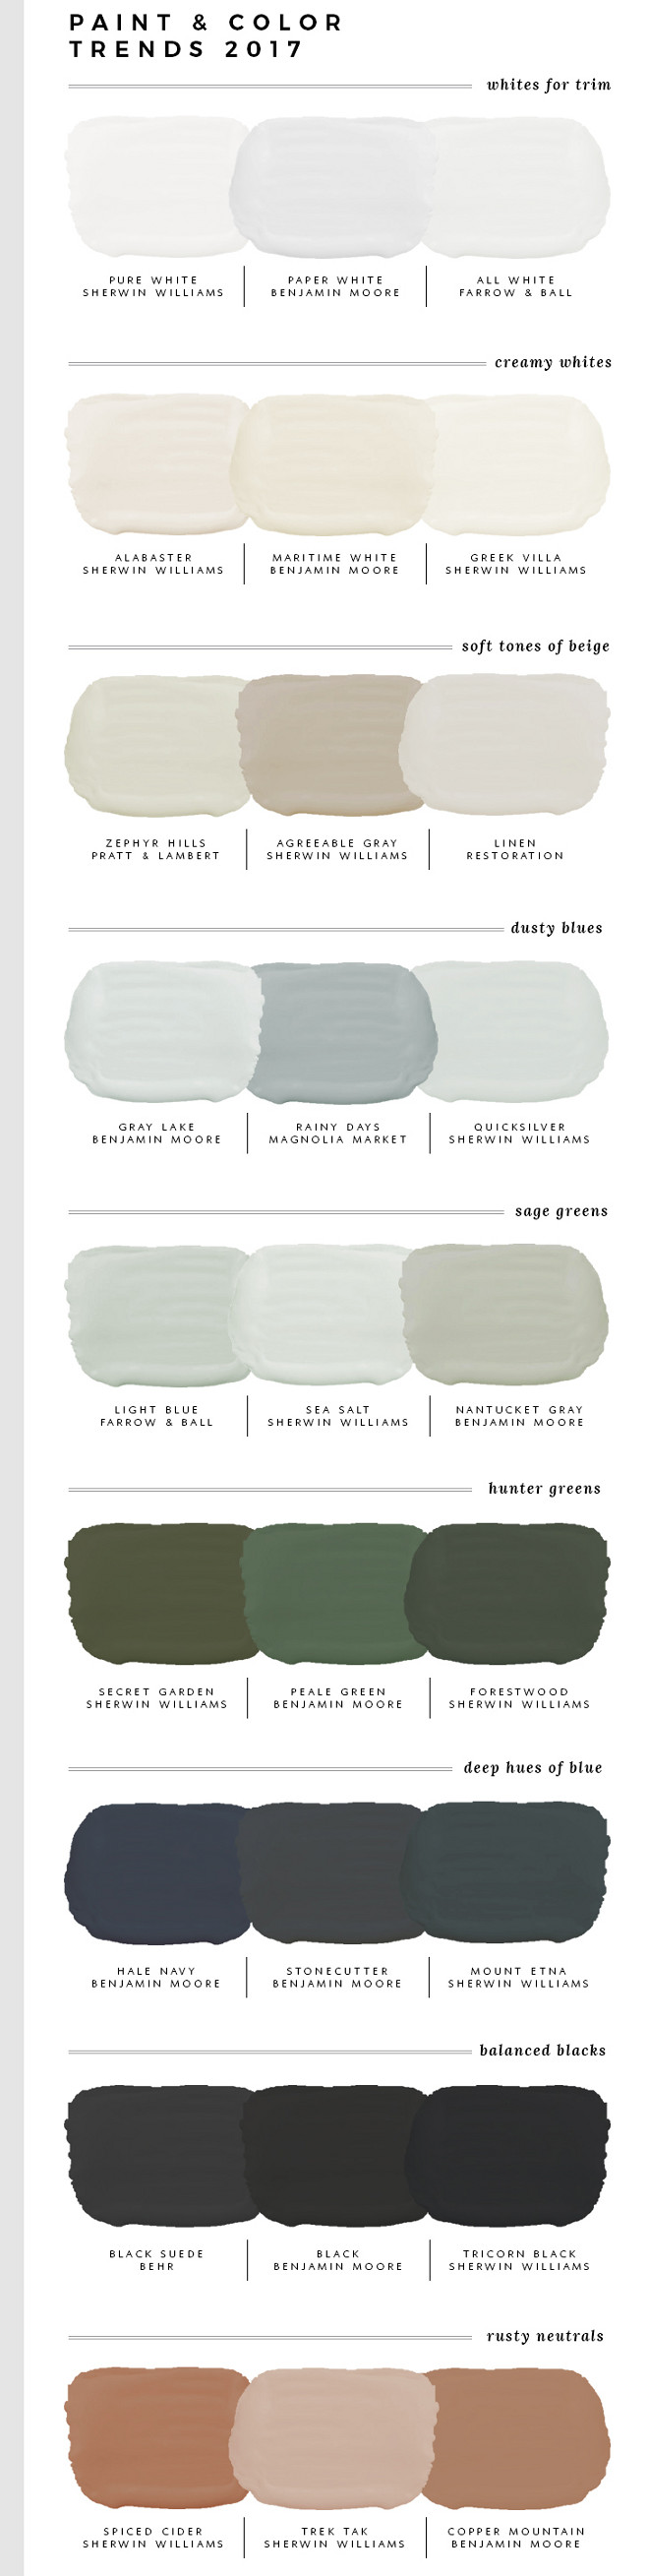 2017 Paint Color Trends. White Paint Color Trends: Pure White Sherwin Williams. Paper White Benjamin Moore. All White Farrow and Ball. Creamy Paint Color Trends: Alabaster Sherwin Williams. Maritime White Benjamin Moore. Greek Villa Sherwin Williams. Beige Paint Color Trends: Zephyr Hills Pratt and Lambert. Agreeable Gray Sherwin Williams. Linen Restoration Hardware. Light Blue Paint Color Trends: Gray Lake Benjamin Moore. Rainy Days Magnolia Market. Quicksilver Sherwin Williams. Sage Green Paint Color Trends: Light Blue Farrow and Ball. Sea Salt Sherwin Williams. Nantucket Gray Benjamin Moore. Dark Green Paint Color Trends: Secret Garden Sherwin Williams. Peale Green Benjamin Moore. Forestwood Sherwin Williams. Navy Blue Paint Color Trends: Hale Navy Benjamin Moore. Stonecutter Benjamin Moore. Mount Etna Sherwin Williams. Black Paint Color Trends: Black Suede Behr. Black Benjamin Moore. Tricorn Black Sherwin Williams. Rusty Neutrals Paint Color Trends: Spided Cider Sherwin Williams. Trek Tak Sherwin Williams. Copper Mountain Benjamin Moore. #PaintColorTrends #2017PaintColorTrends #NewPaintColorTrends #PaintColor #Trends Via Room for Tuesday